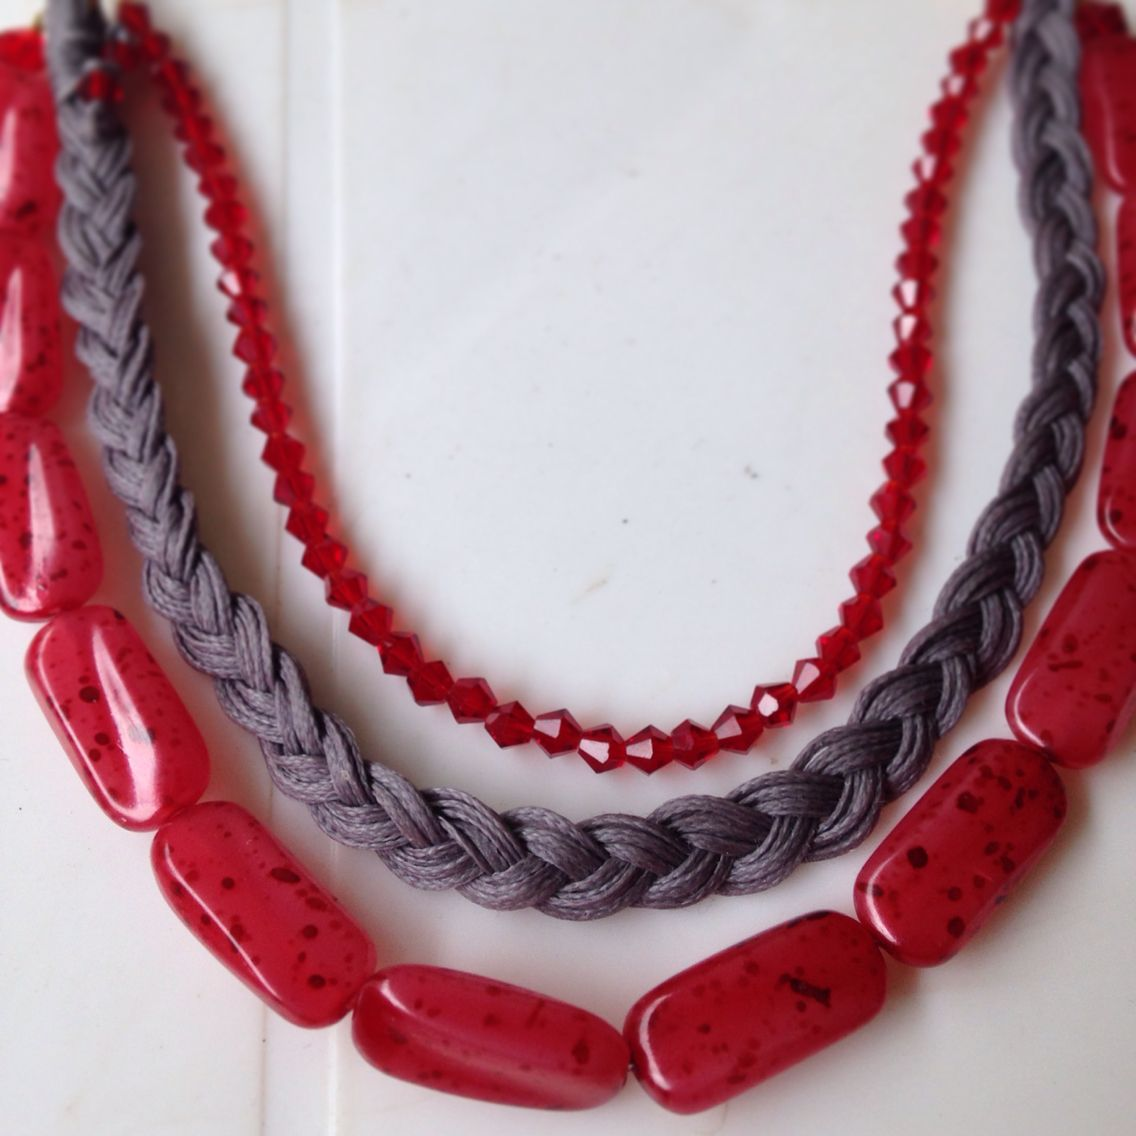 Triple necklace handmade